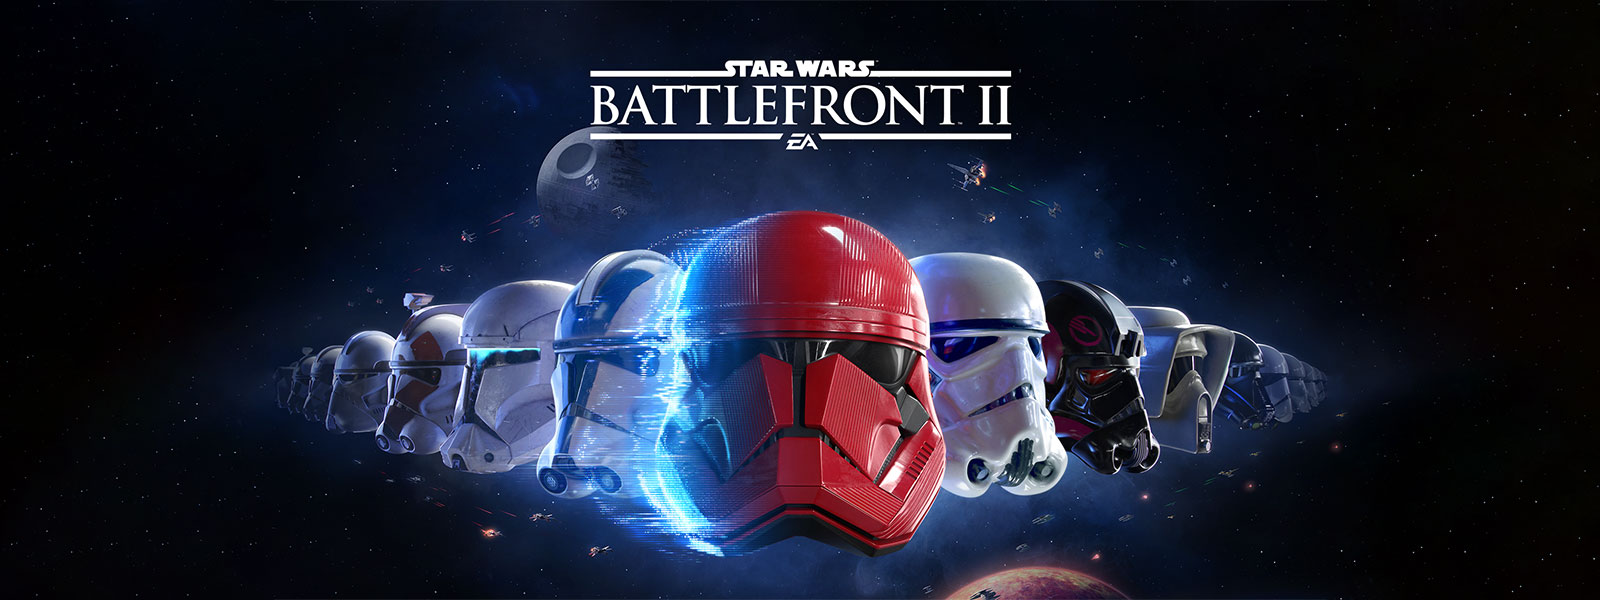 Star Wars Battlefront II, line-up of many different stormtrooper masks with the galaxy in the background